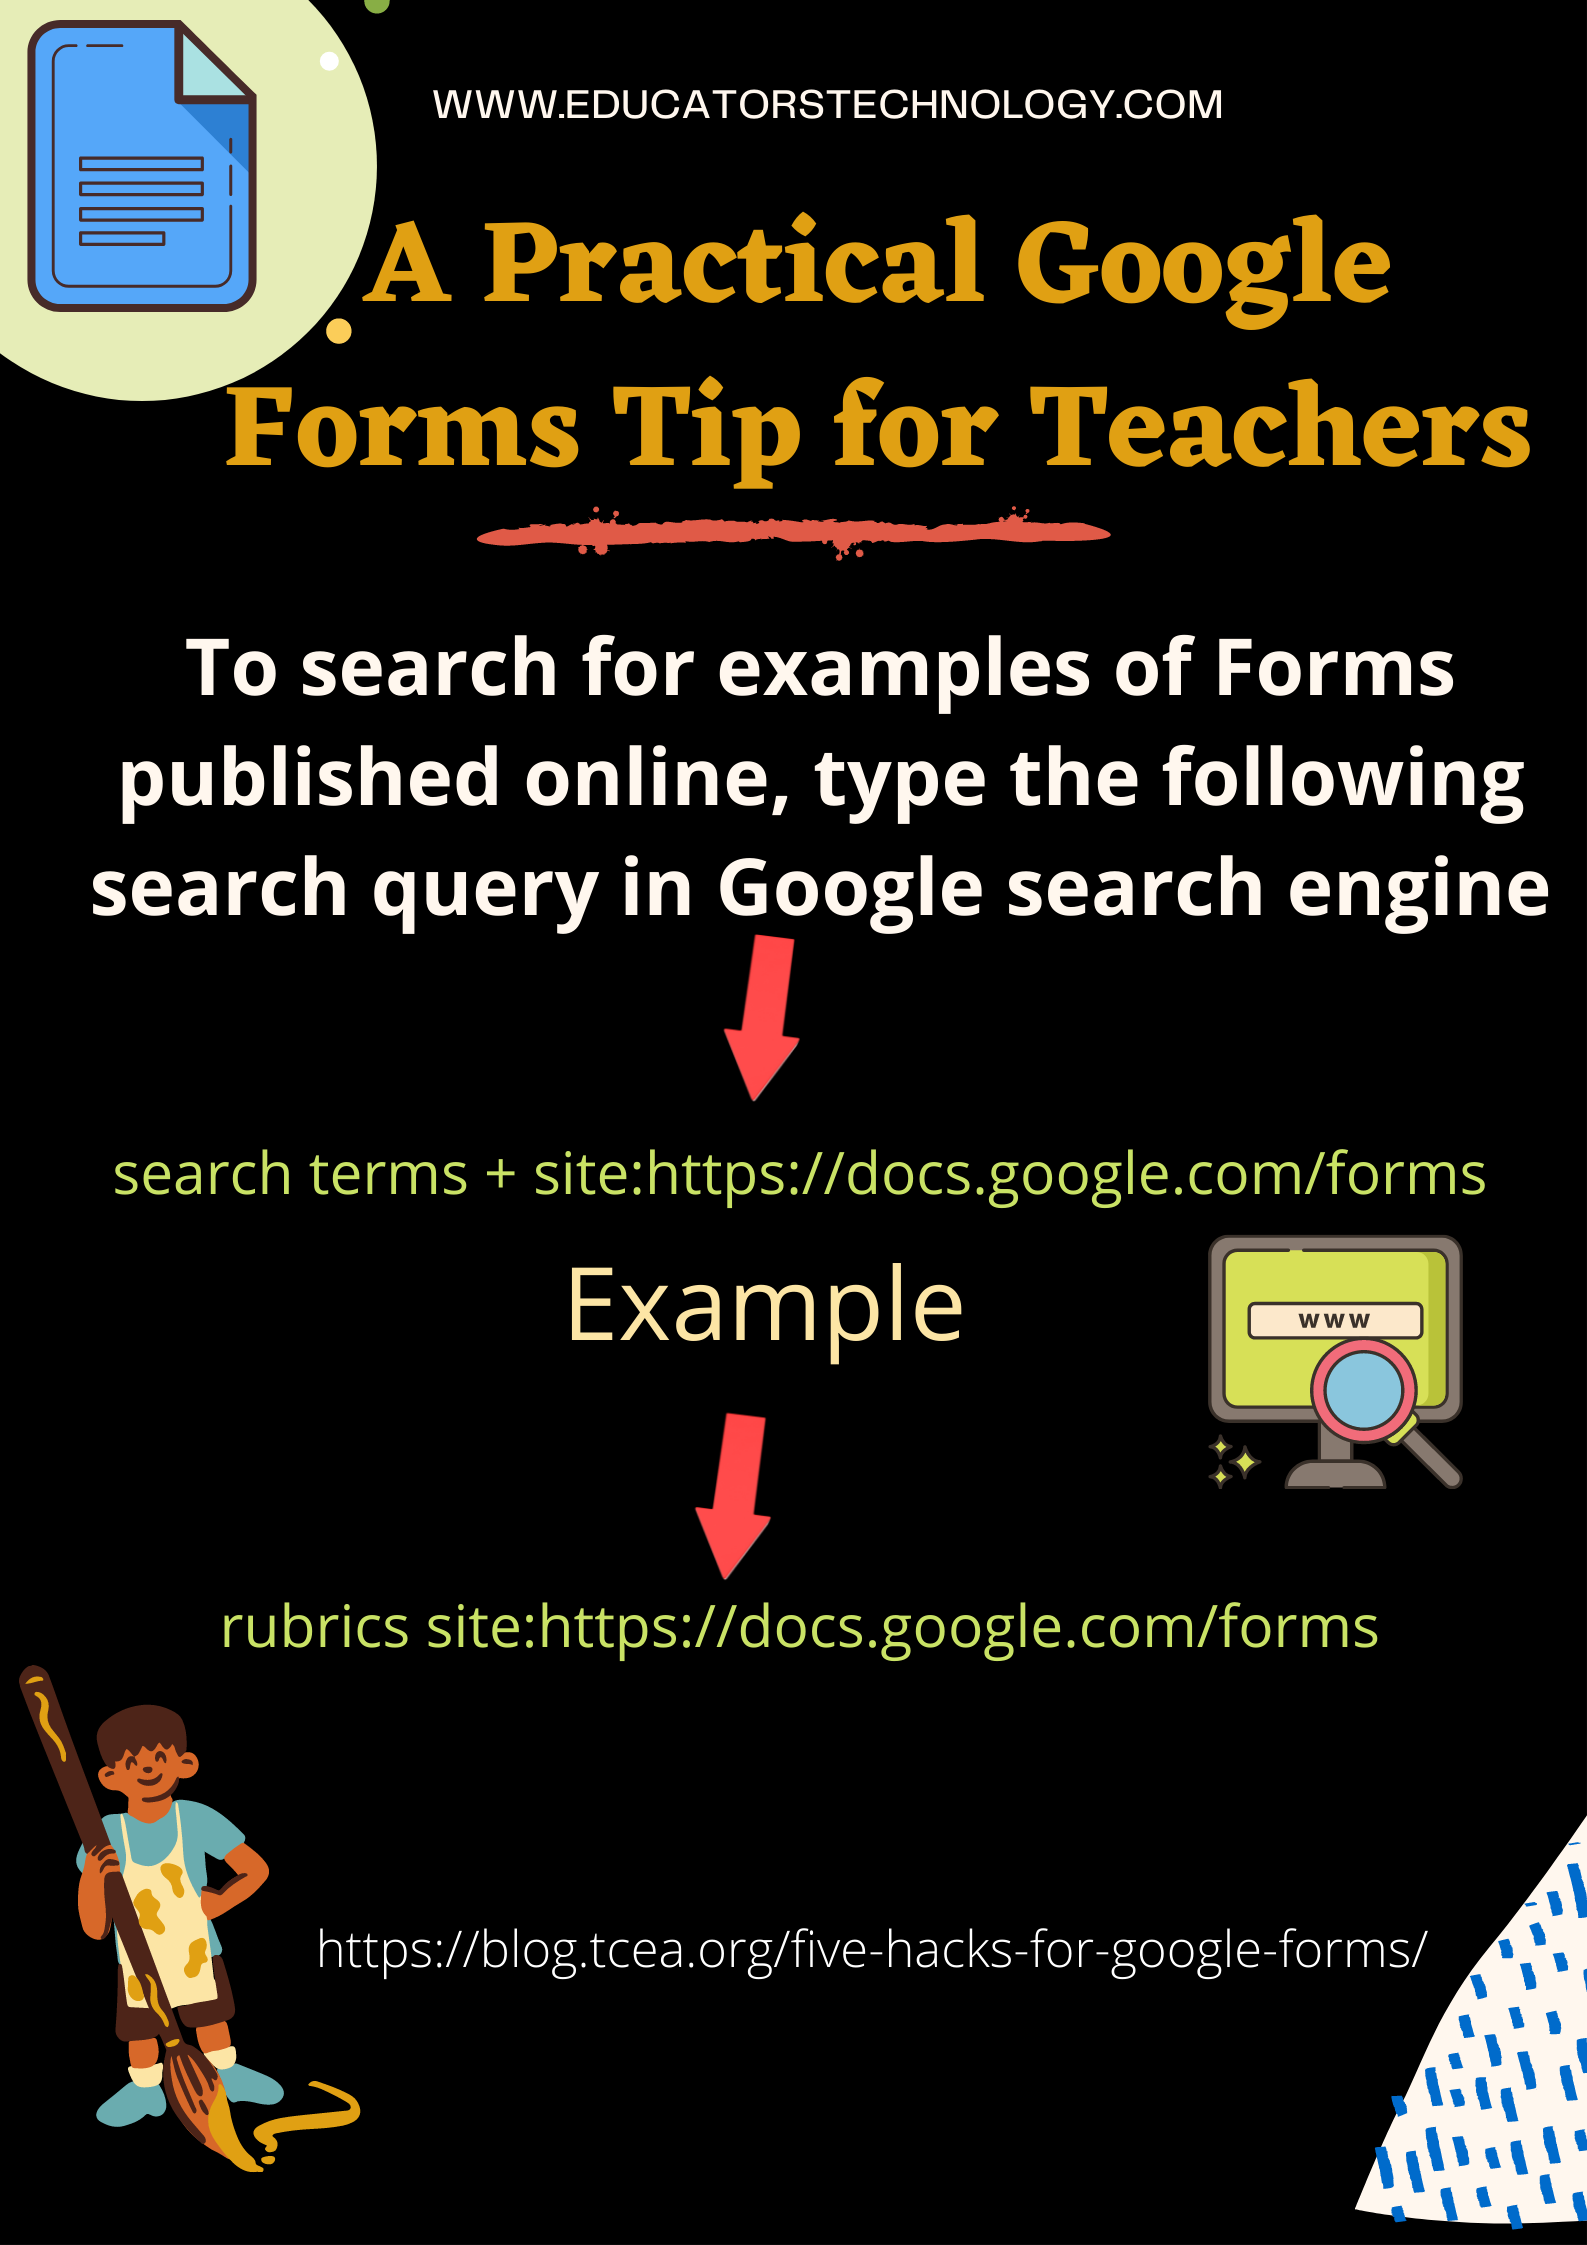 Google Forms is one of the best free tools for creating a wide variety of forms from surve A Practical Google Forms Tip for Teachers